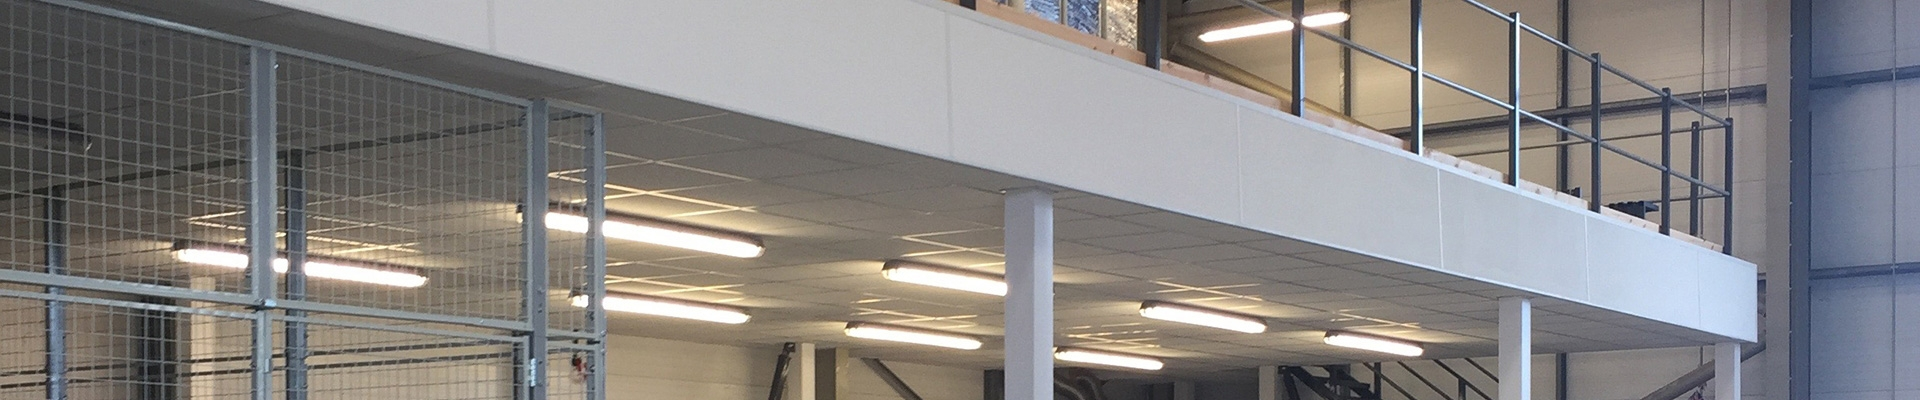 Mezzanine Floors Services : Mezzanine floors dorset hampshire rdp